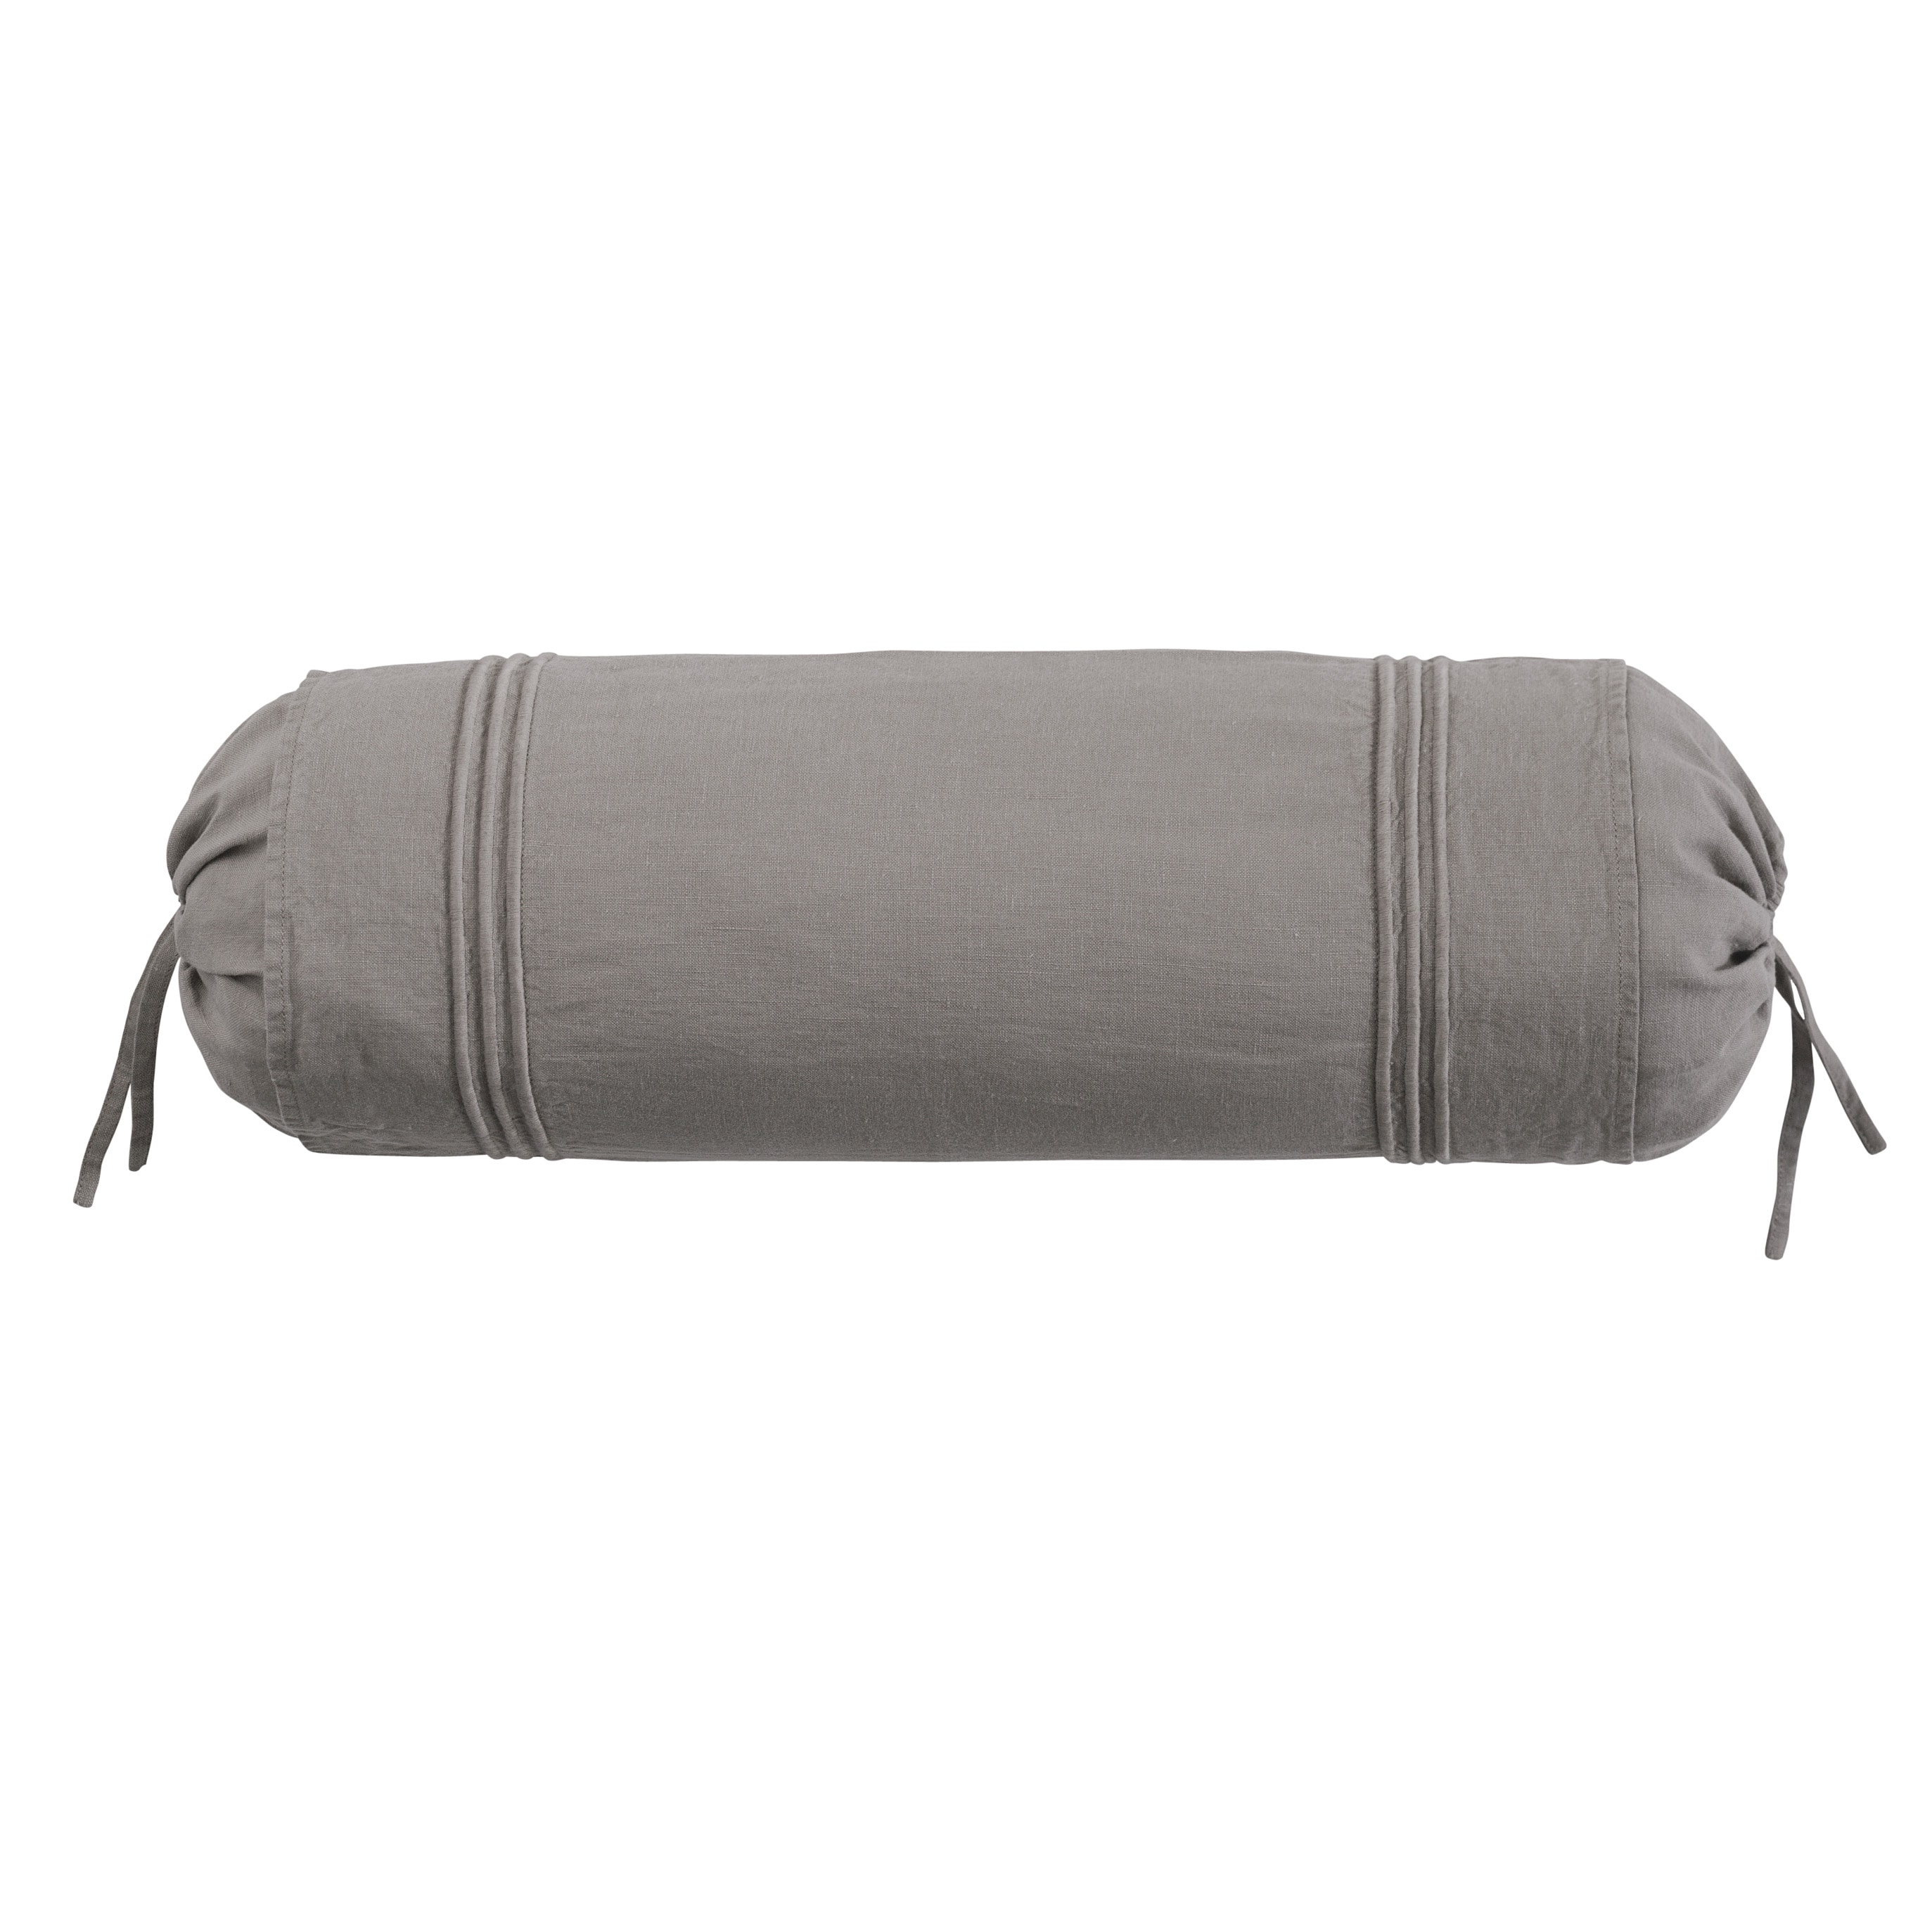 Roxbury Park Baratto Graphite With Graphite Trim Neck Roll Decorative Pillow at Sears.com